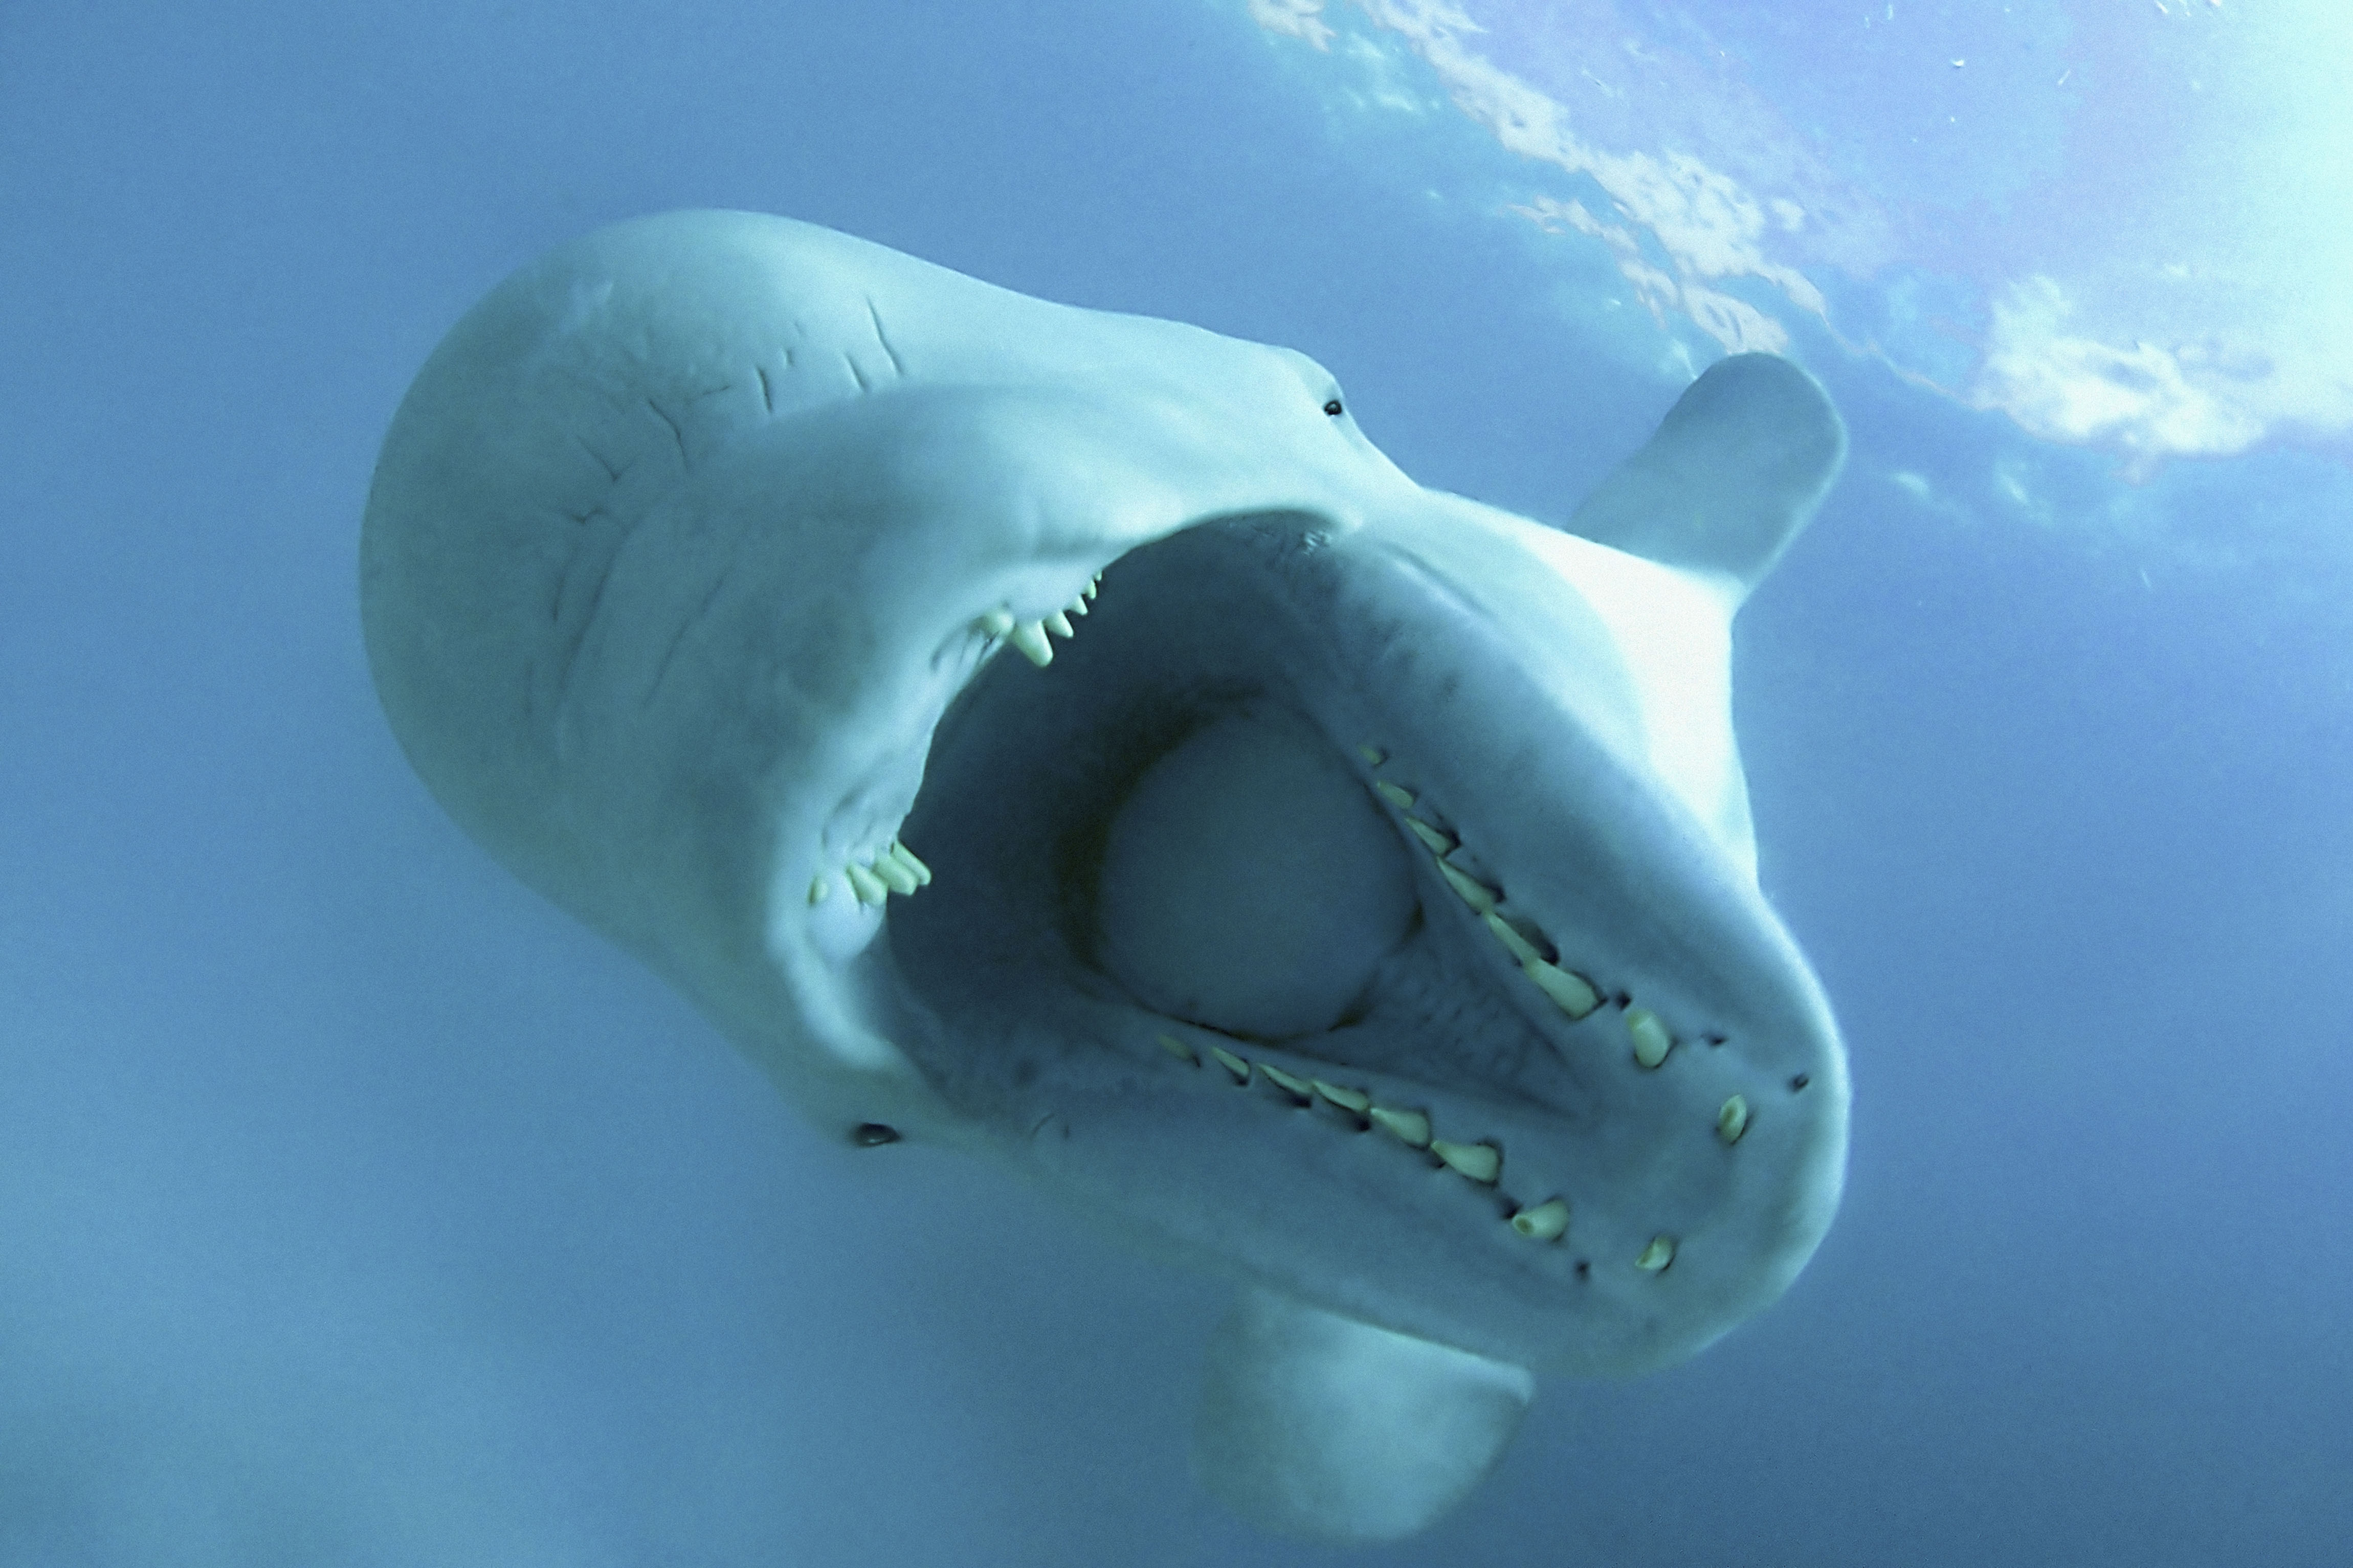 Beluga whales pictures - photo#6